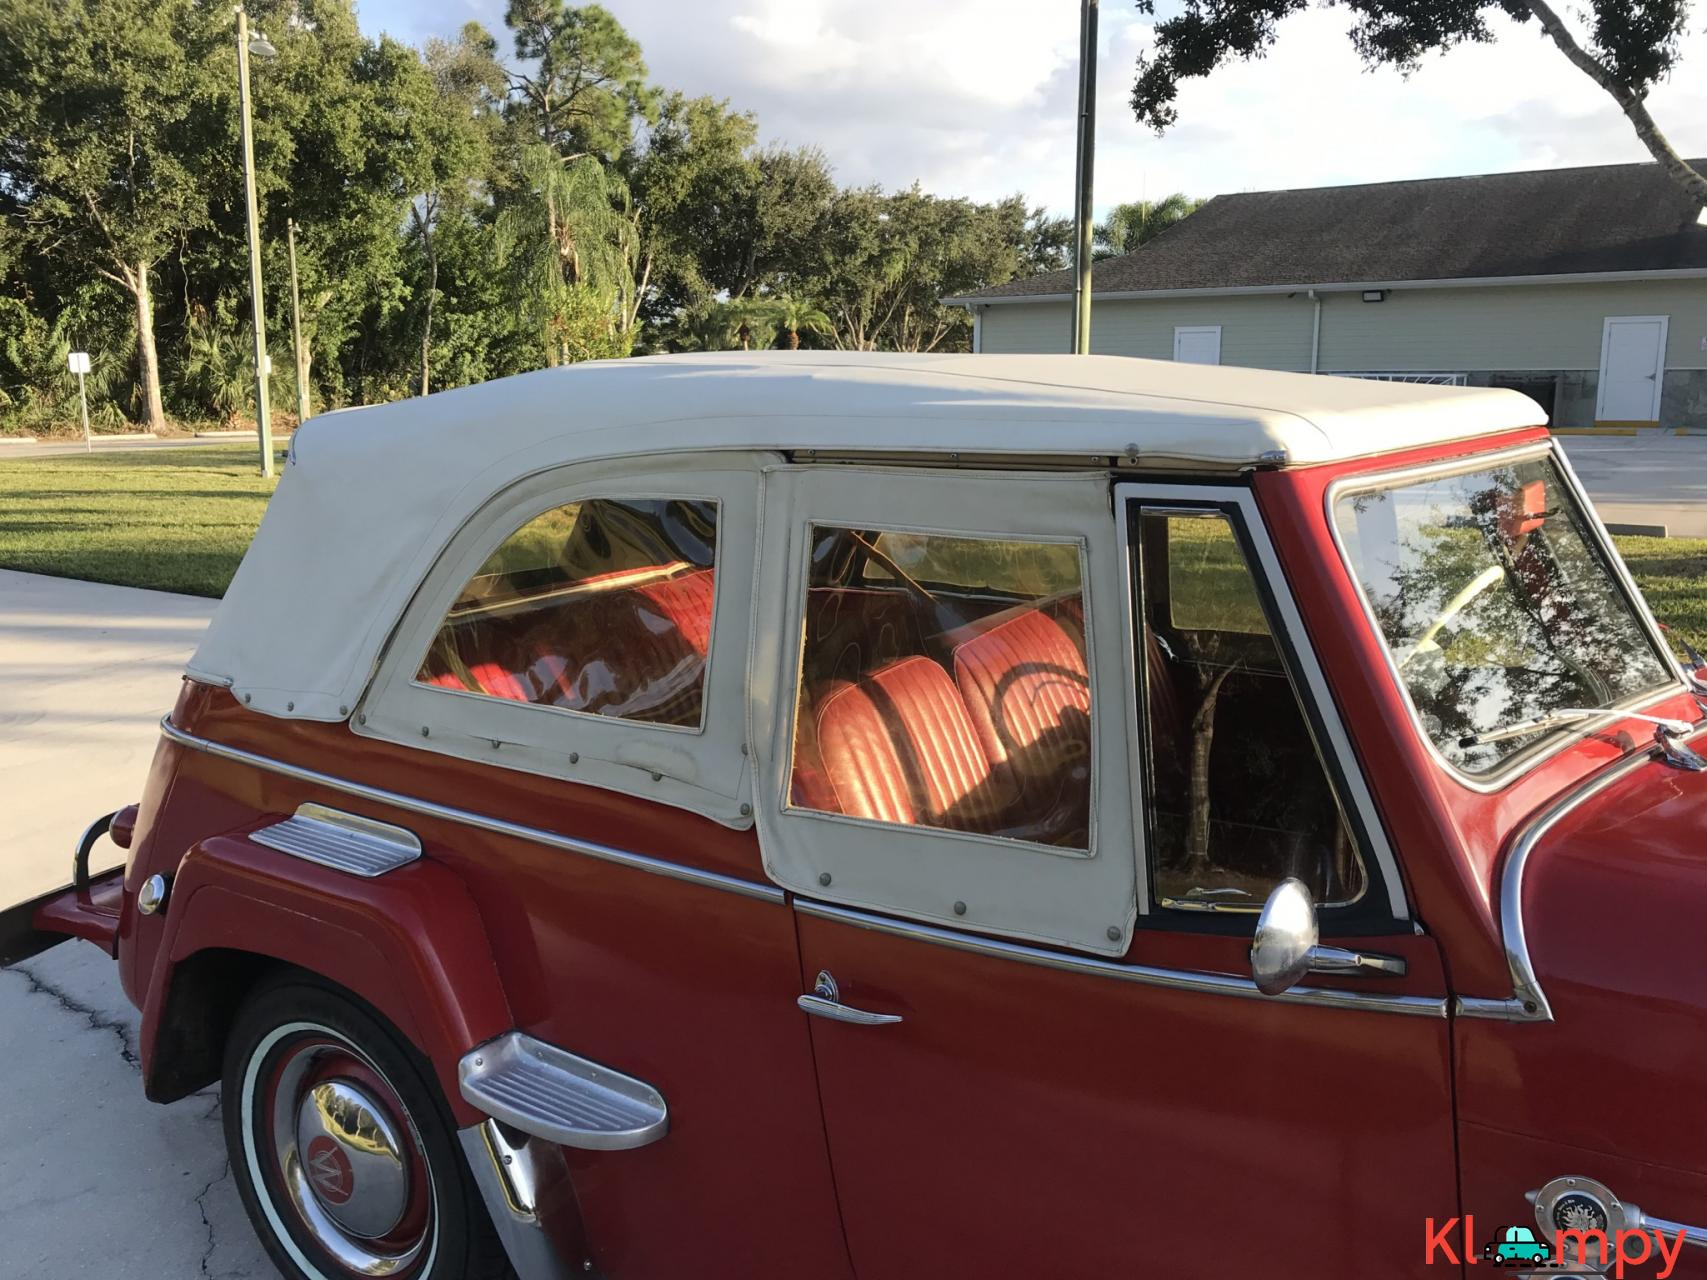 1949 Willys-Overland Jeepster 148ci L48 - 13/16